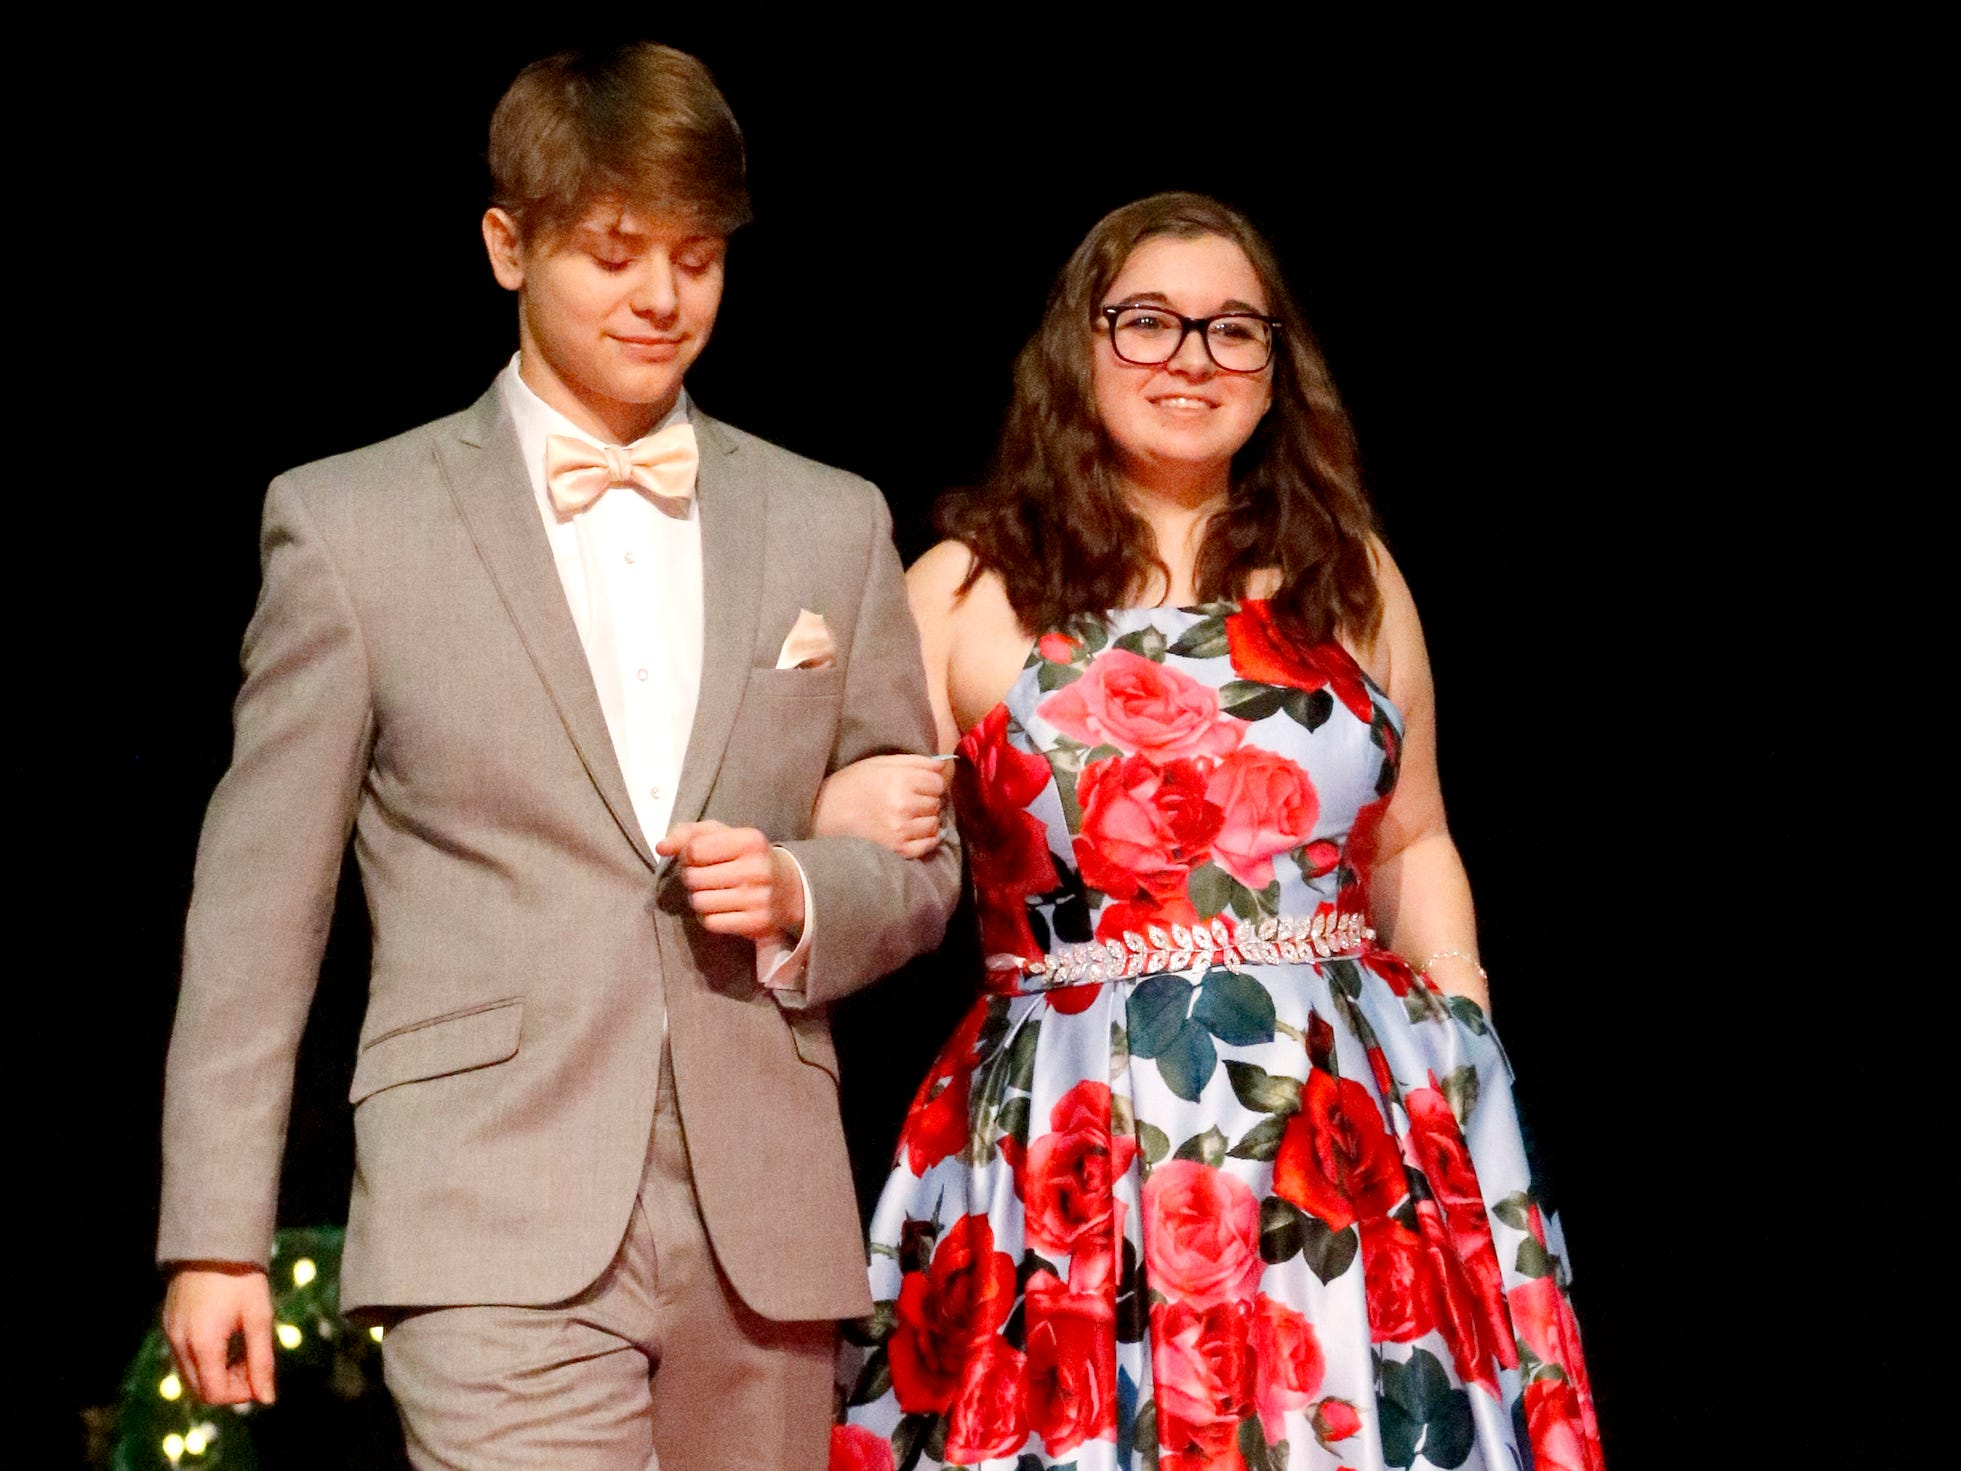 Shane Wozniak, left and Mackenzie Lee, right show off the latest in prom fashions during the Siegel Prom Fashion show on Thursday, Feb. 14, 2019.